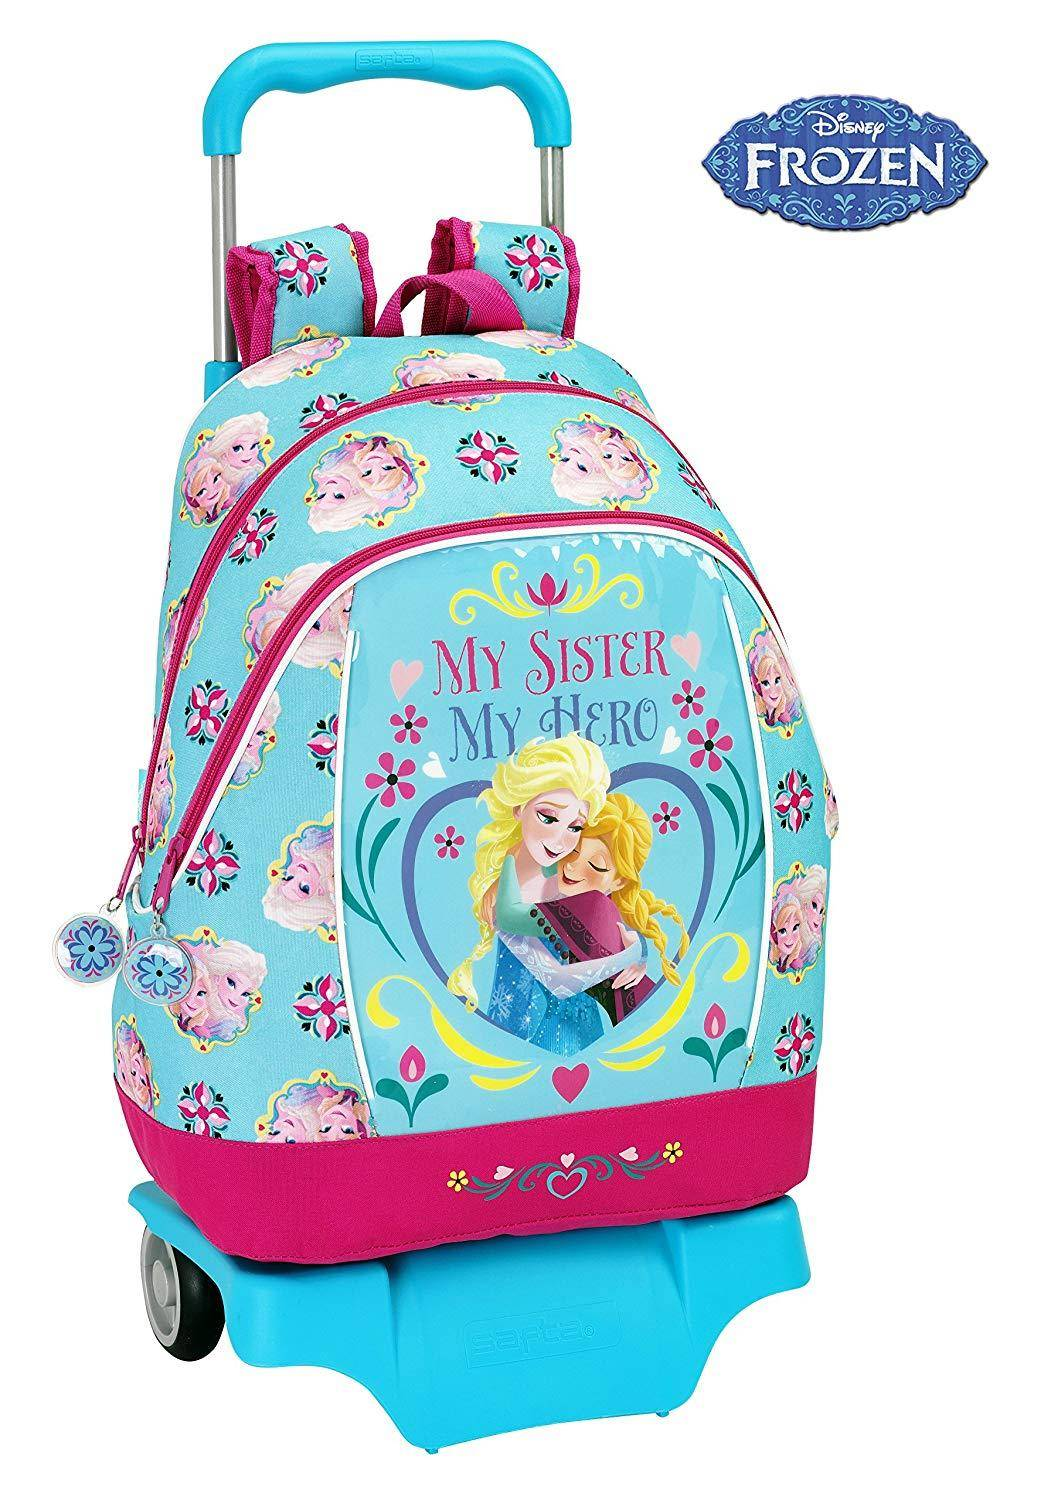 safta zaino trolley scuola frozen rucksack with wheels (big) 33x42x14 cm